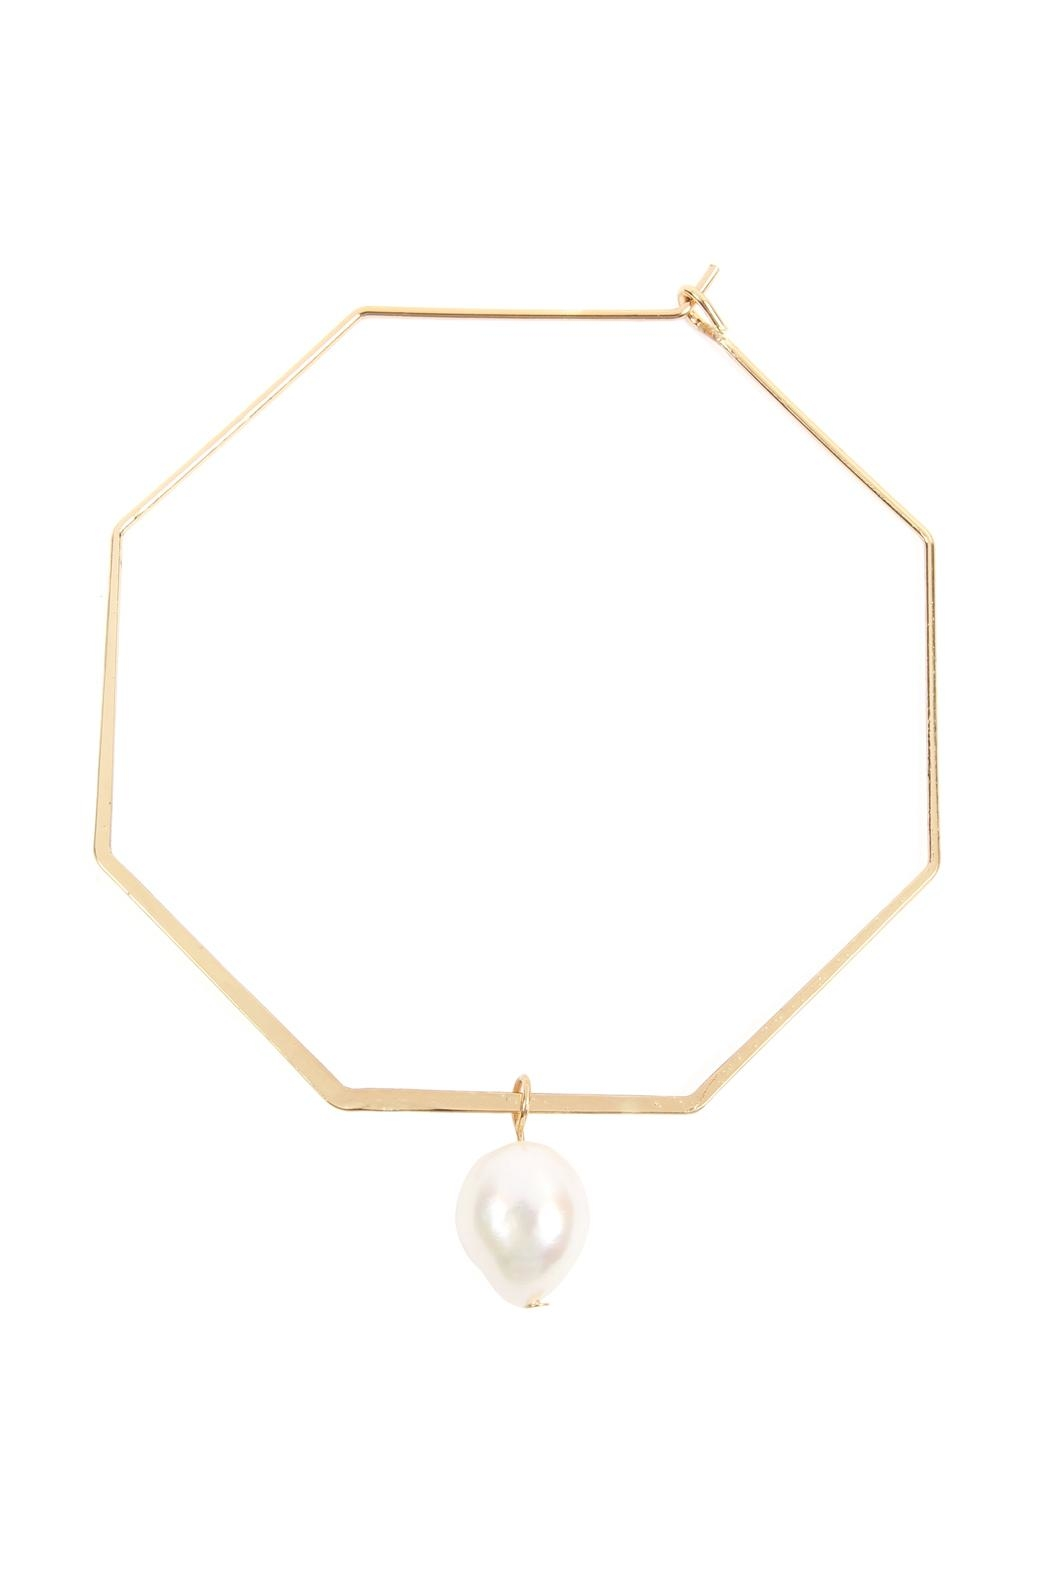 Riah Fashion Octagon-Hoop-Earrings With Teardrop-Pearl - Front Cropped Image